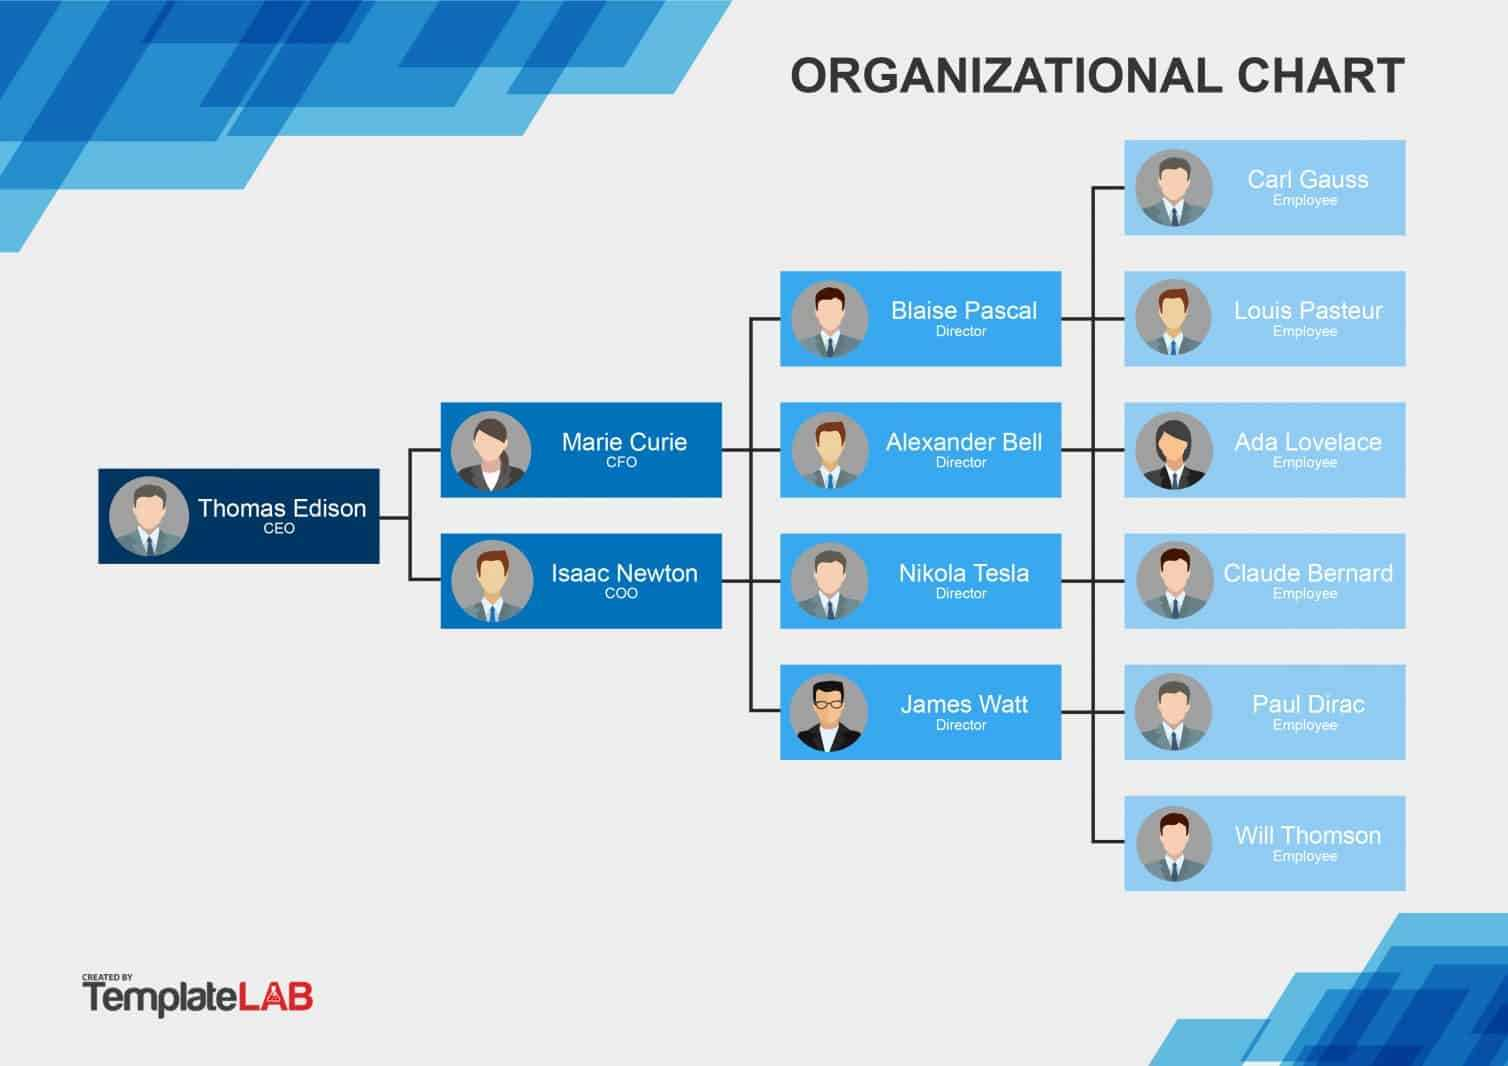 40 Organizational Chart Templates (Word, Excel, Powerpoint) Throughout Word Org Chart Template